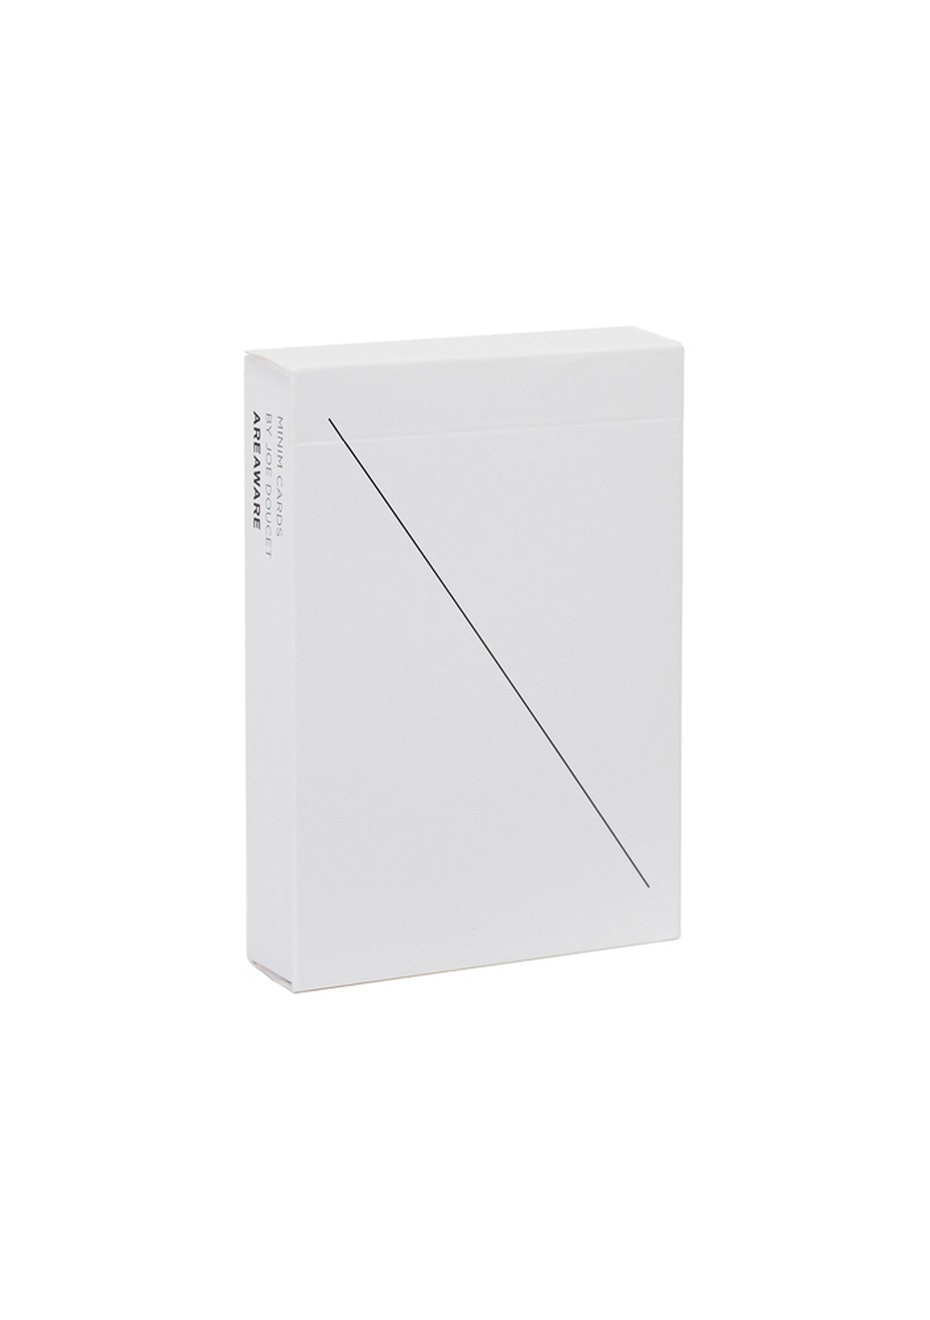 Areaware - Minim Playing Cards - White